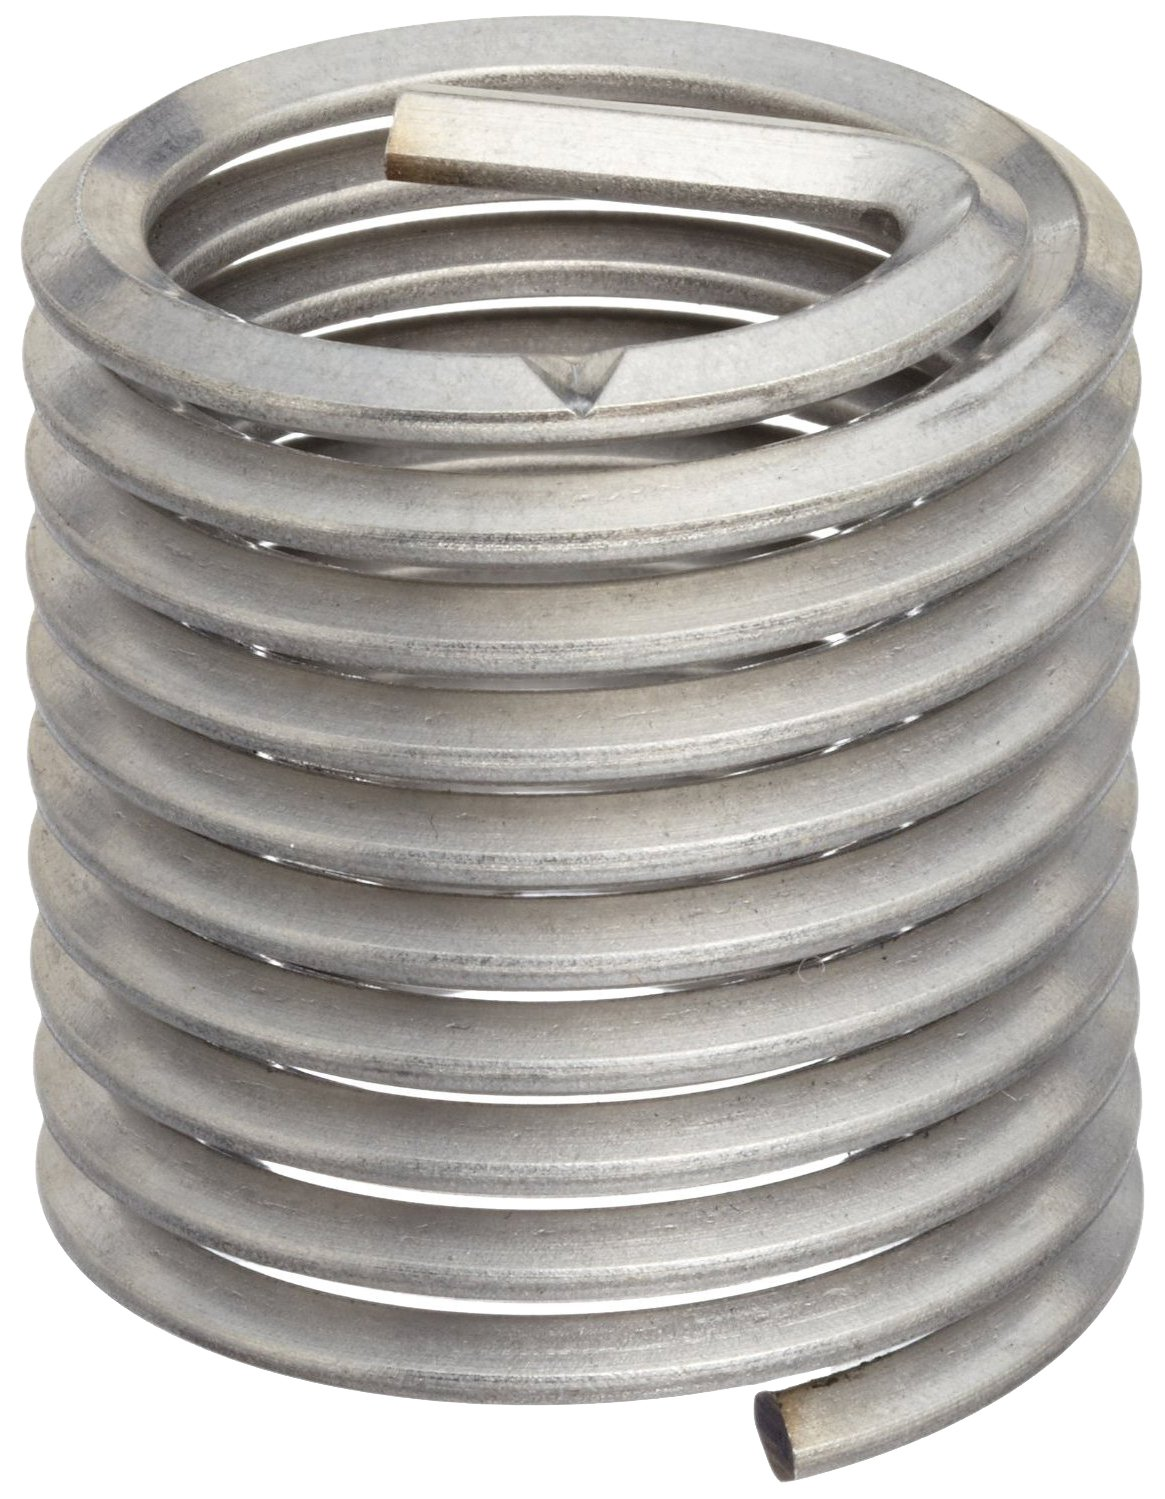 304 Stainless Steel Pack of 5 Helical Powercoil 3520 Series Threaded Insert M14-2.0 Internal Threads 3520-14.00X2.0DP 28mm Length